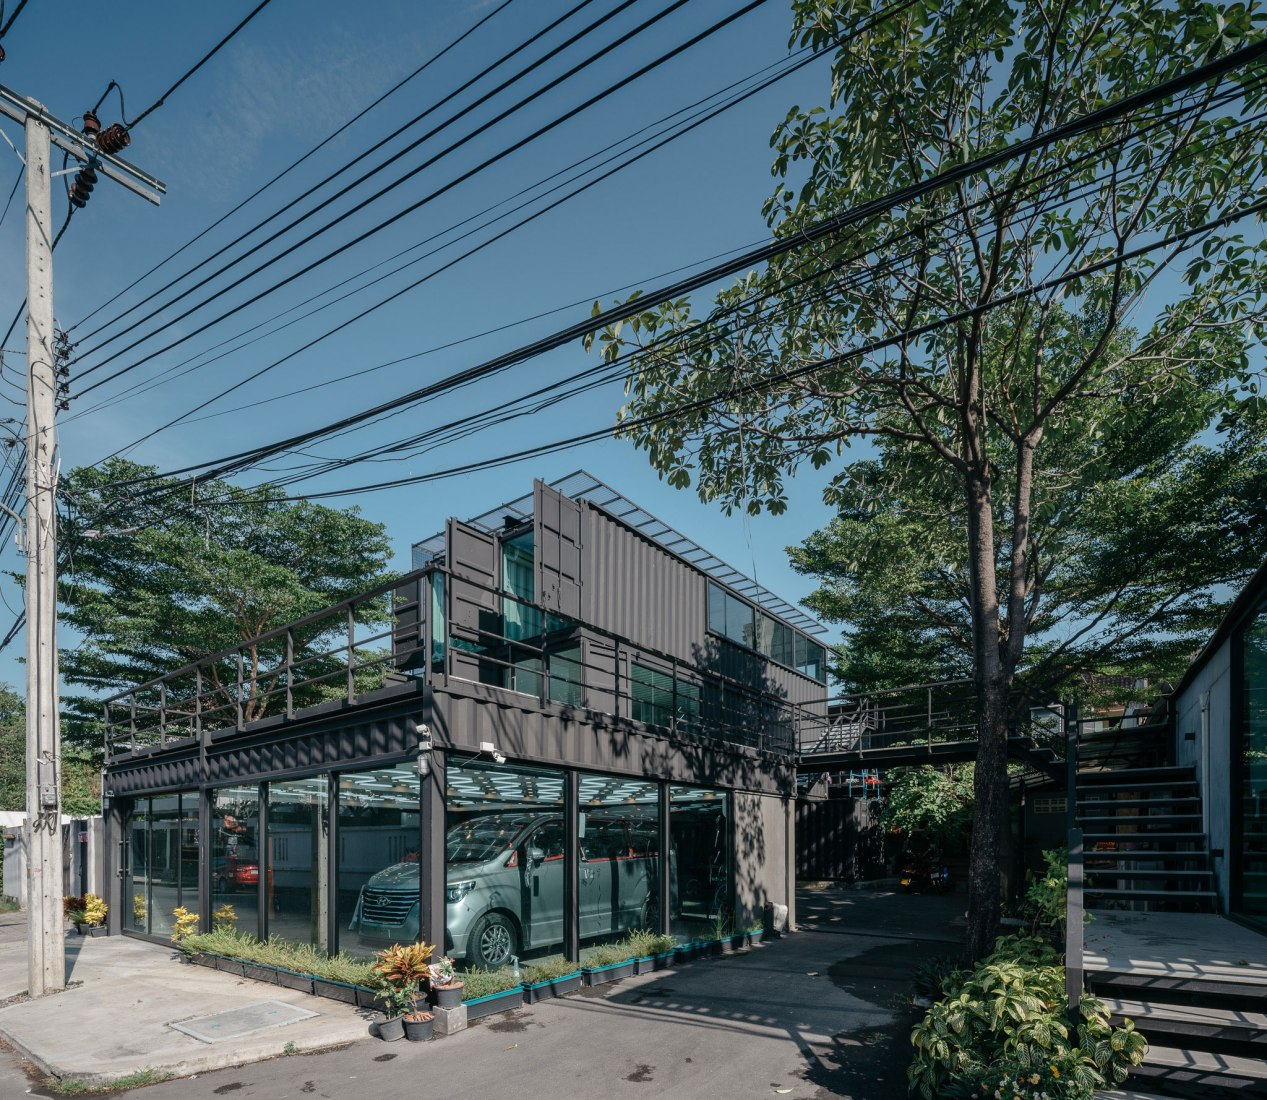 Muangthongthani Carcare by Archimontage Design Fields Sophisticated. Photograph by Chaovarith Poonphol Photography